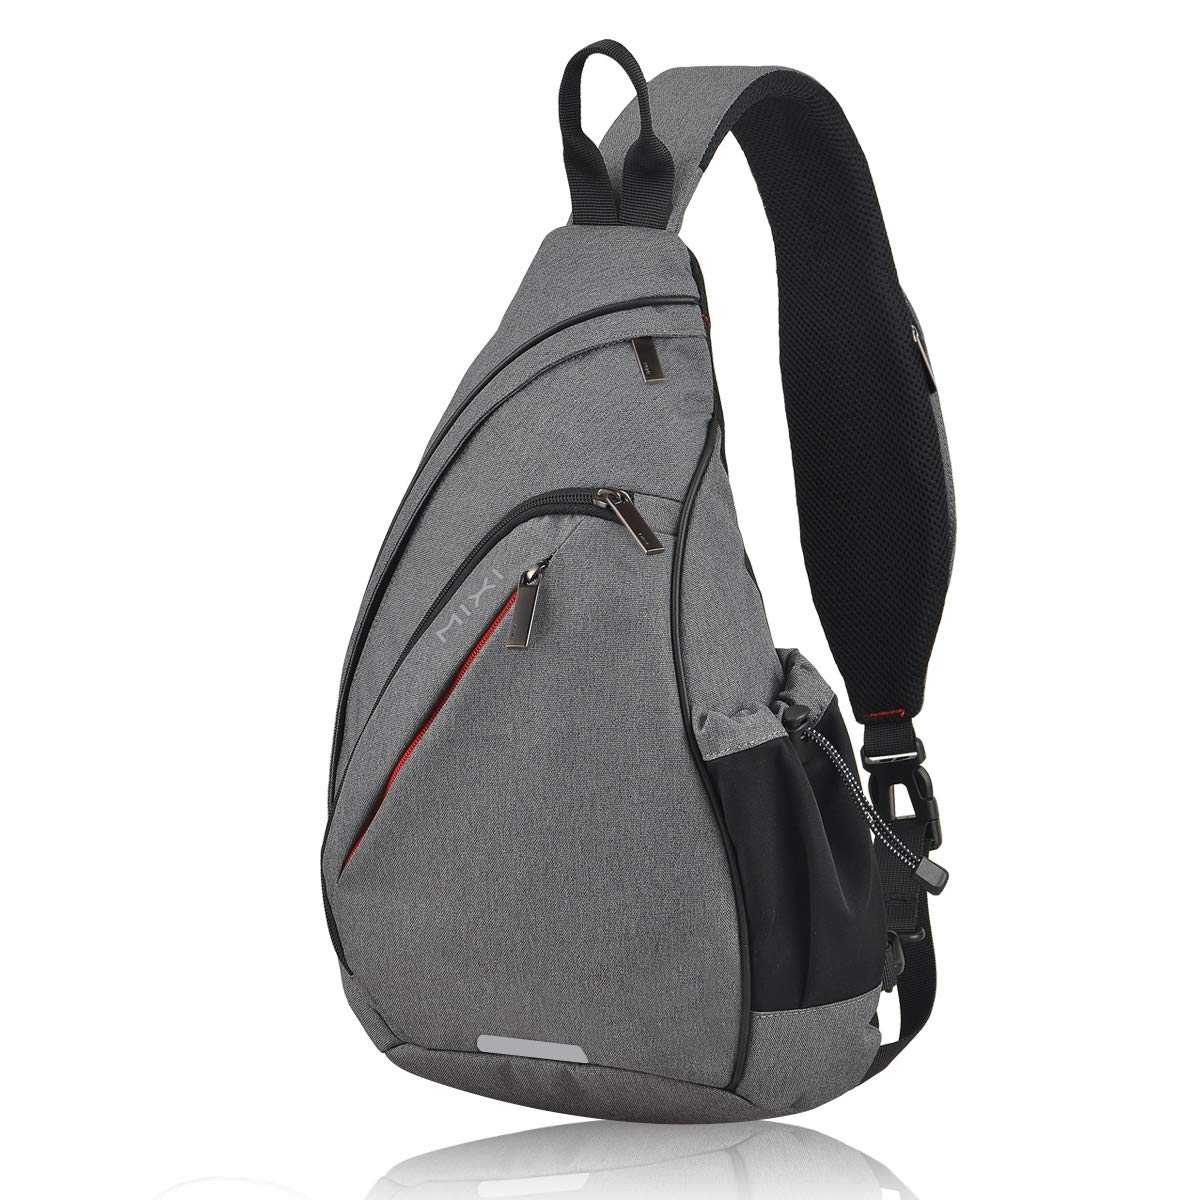 Hanke Sling Bag with USB Port Water Repellent Crossbody Personal Pocket Bag Lightweight Chest Bag for Cycling Walking Hiking Daypacks-17 inch,Grey